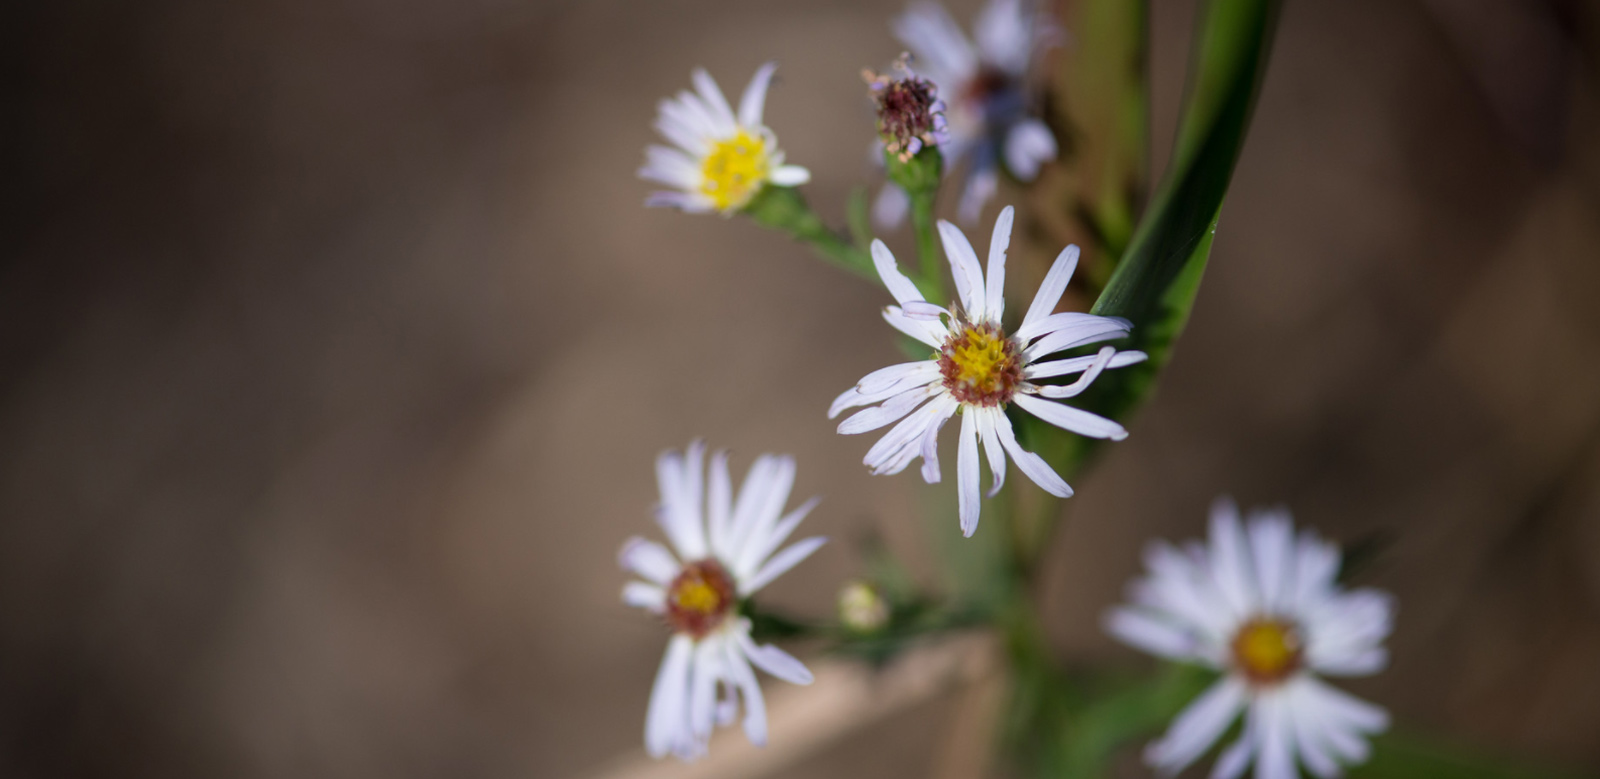 white daisies in bloom